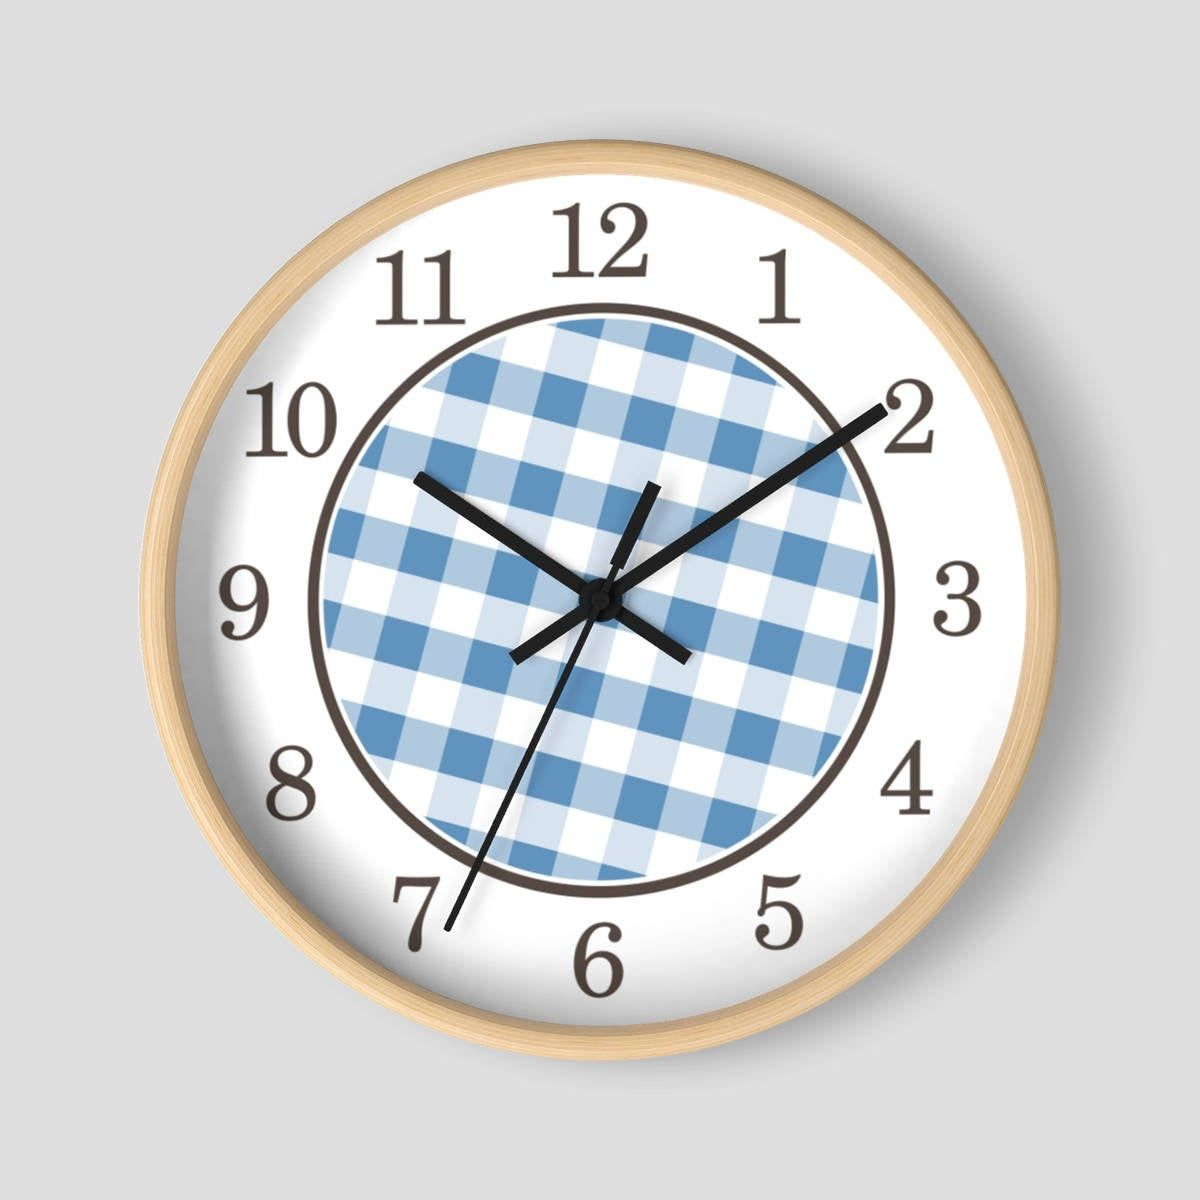 5 Star Review Love The Clock It Looks Real Pretty In My Kitchen Thank You Joann Blue Gingham Wall Clock Pattern In Blue In 2020 Wall Clock Clock Black Clocks